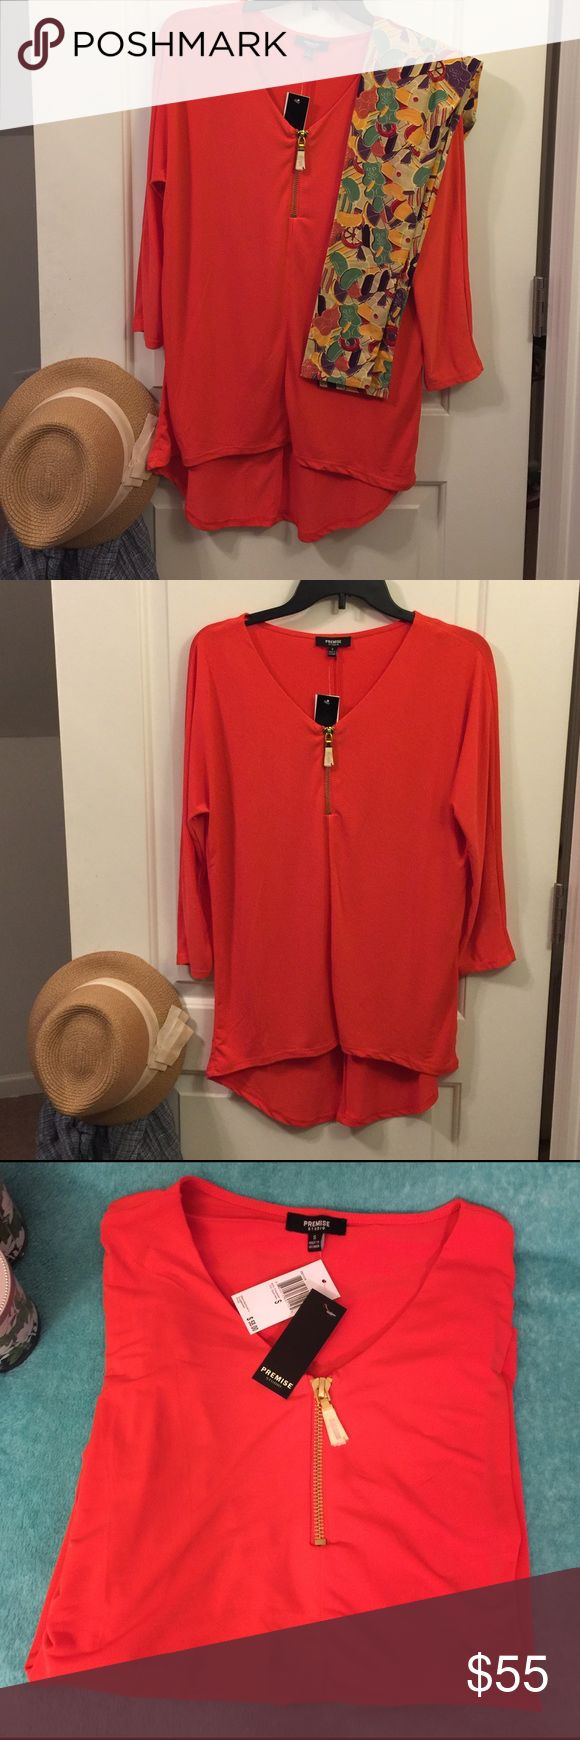 PREMISE Studio Tunic & LulaRoe Leggings Combo TOP - made in Vietnam📍NWT📍Chili Pepper Orange hi-lo tunic with 3/4 sleeves📍Stretchy material, 95% Polyester 5% Spandex📍Size Small.  LEGGINGS - made in China. Part of my Unicorn Vault Collection bought directly from various LulaRoe Consultants only. NWT, Hard-To-Find Gummy Bears 🐻 .    ***Sold as Combo or Individually   Combo Price:  $55.00 Top only:  $20.00 Leggings only:  $45.00  ❌ to Trades PREMISE Studio & LulaRoe Other